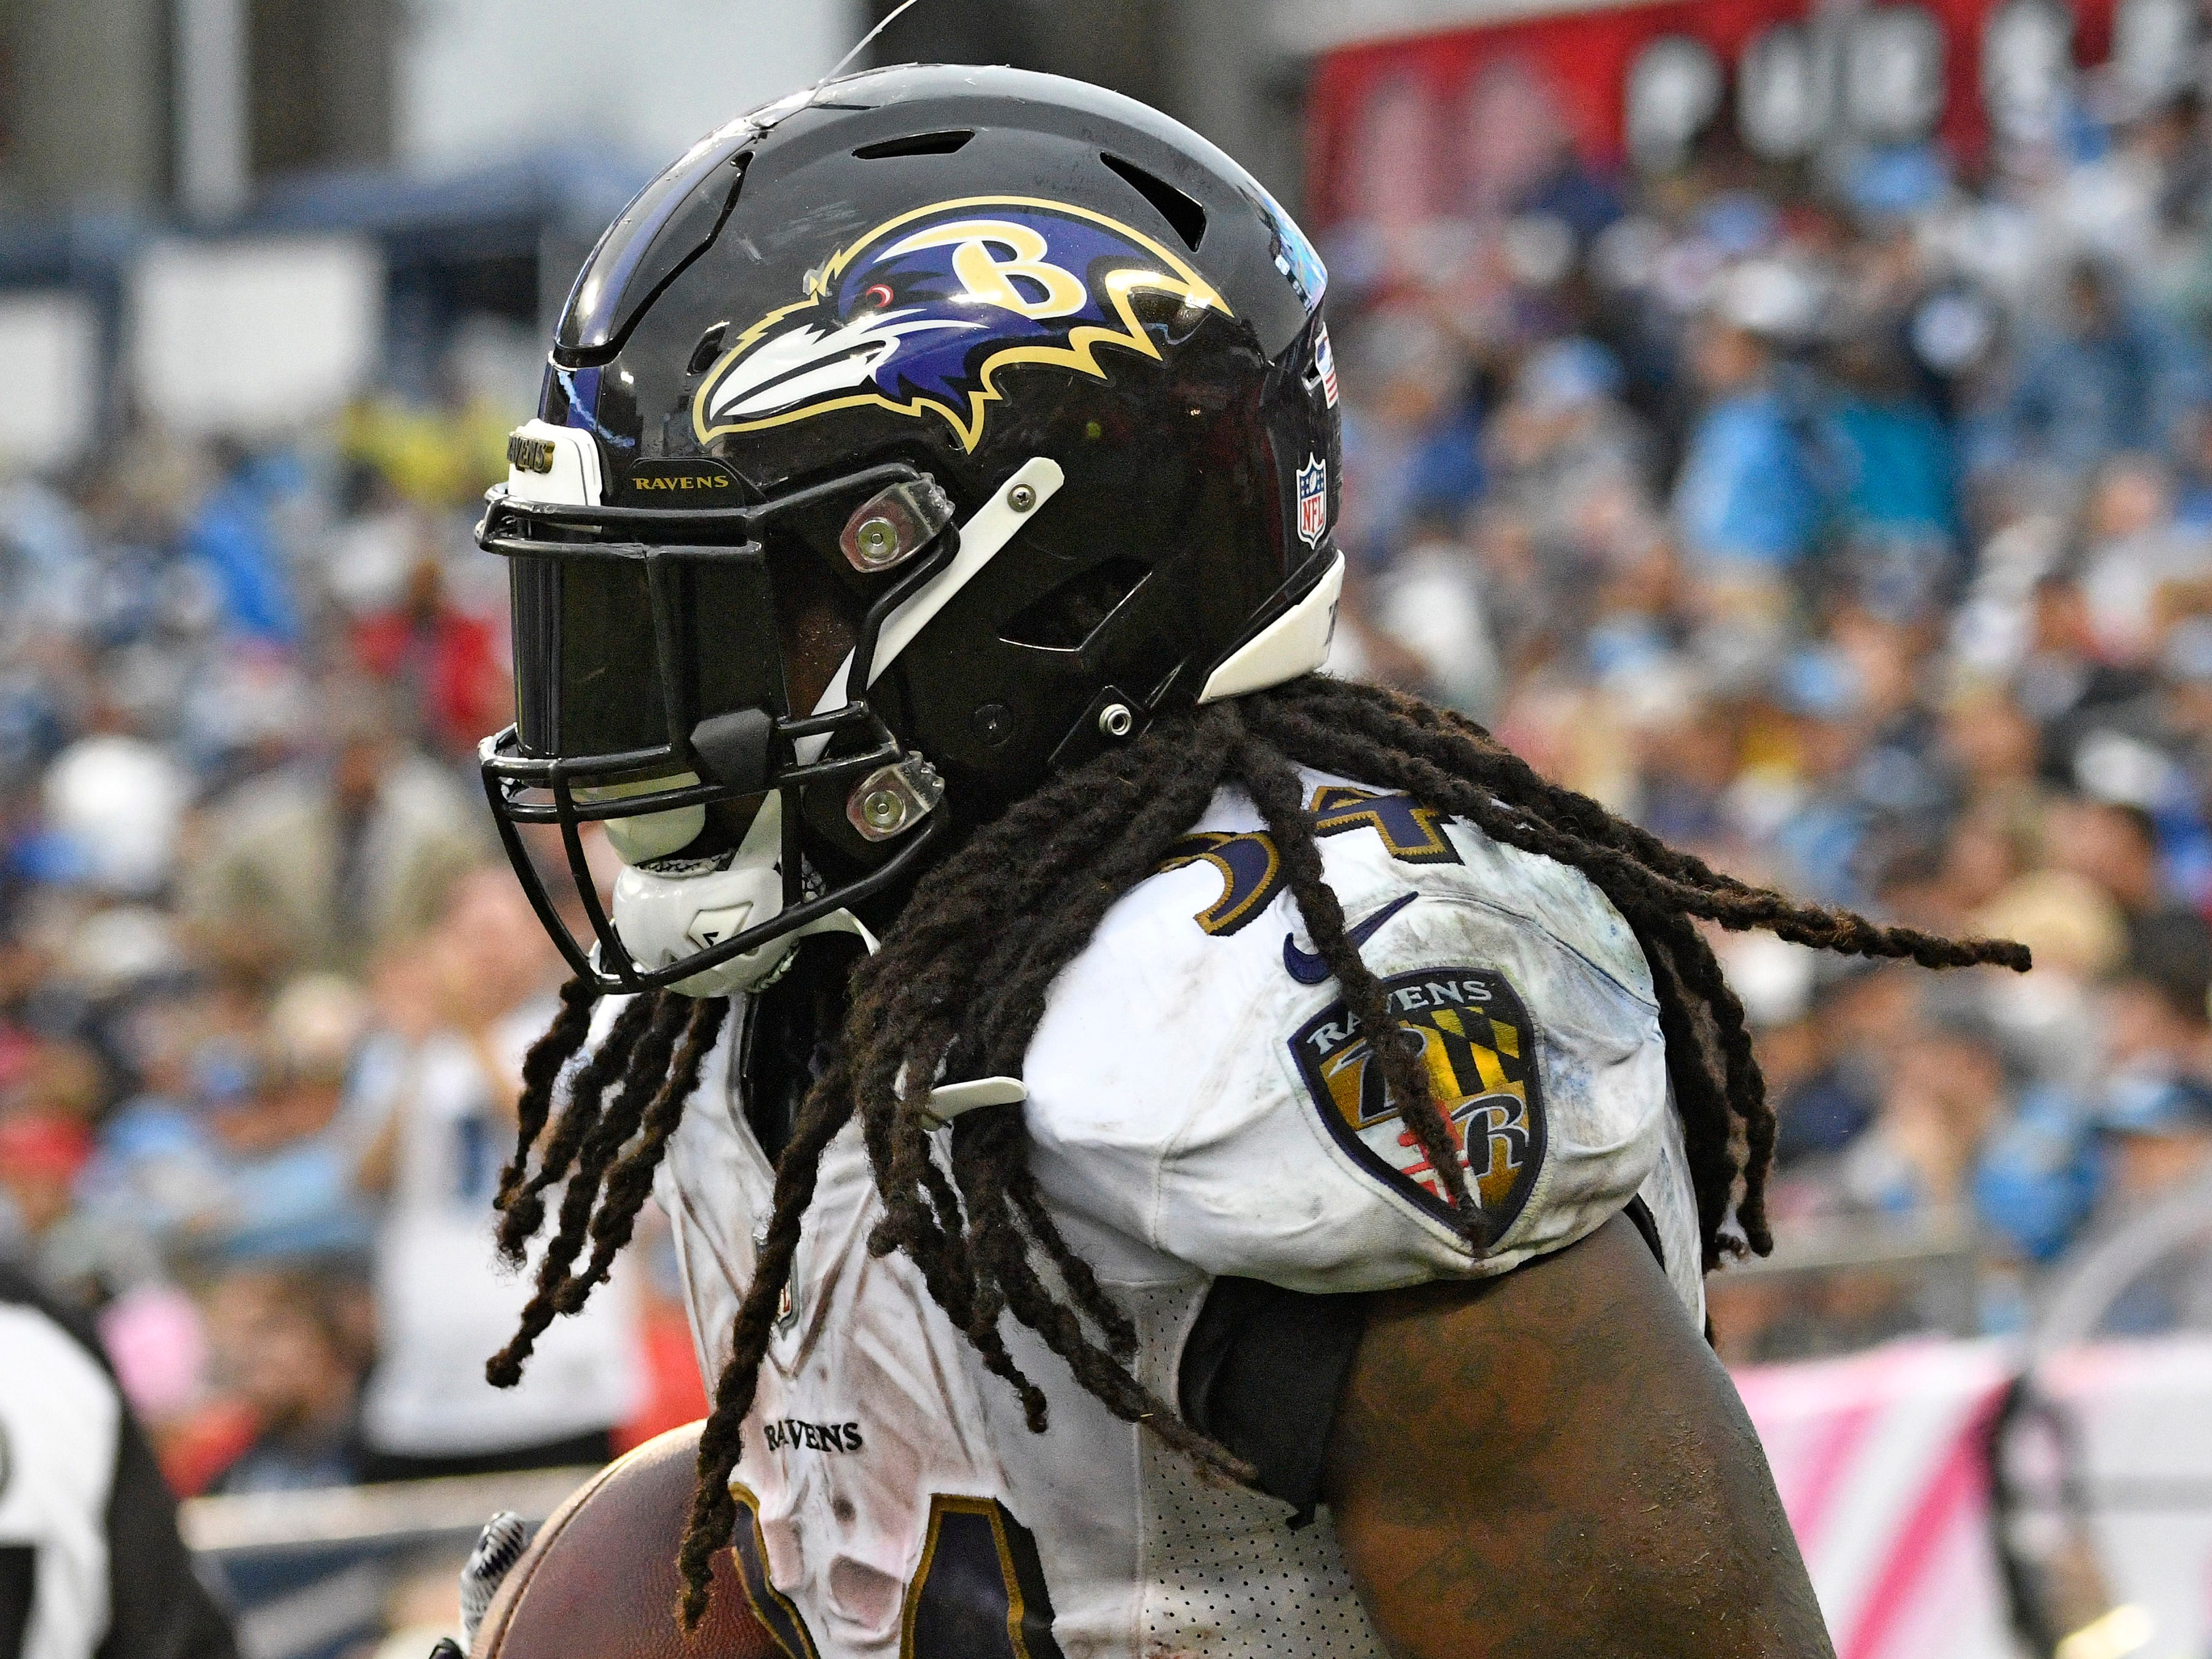 Ravens running back Alex Collins (34) carries the ball after his touchdown in the third quarter at Nissan Stadium Sunday, Oct. 14, 2018, in Nashville, Tenn.